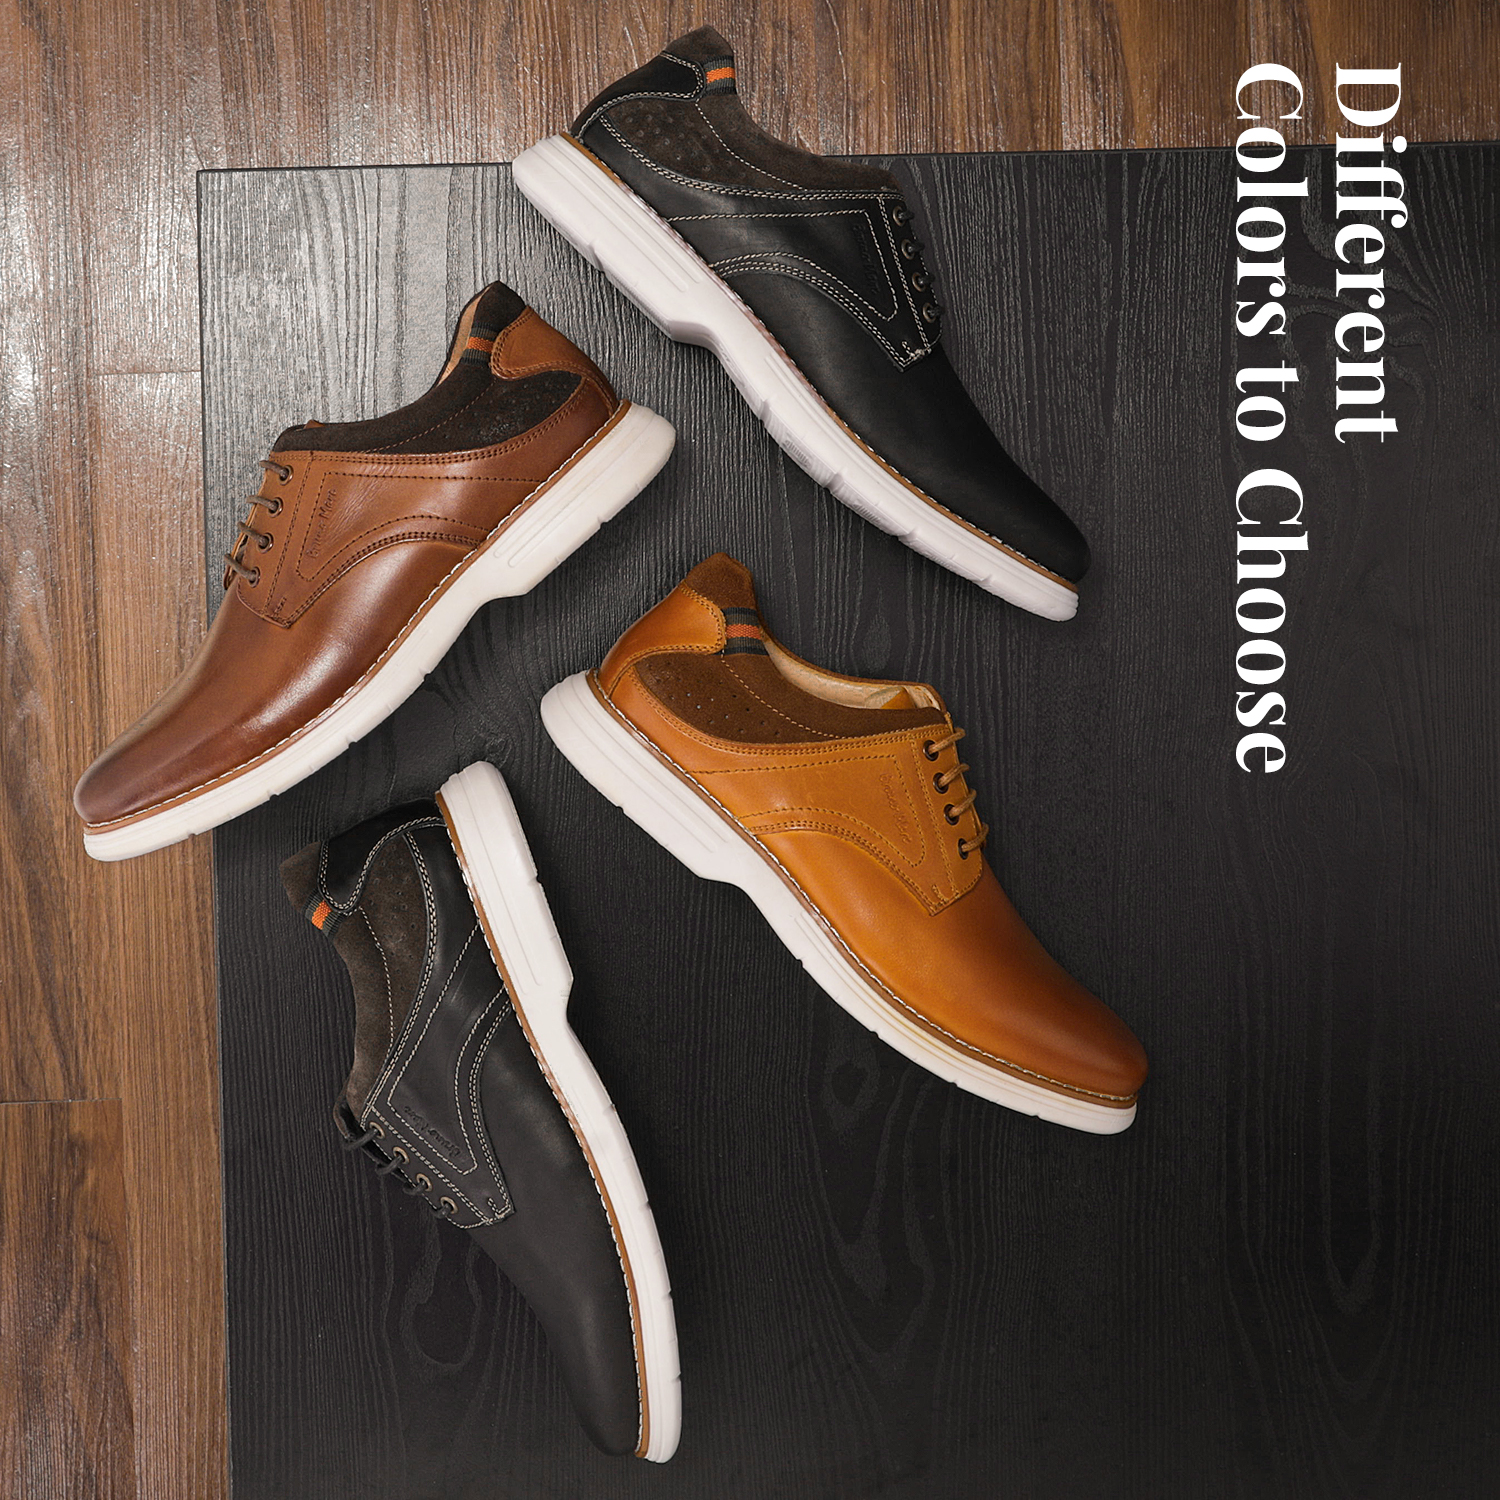 Mens-Fashion-Genuine-Leather-Business-Dress-Sneakers-Casual-Lace-up-Oxford-Shoe thumbnail 42